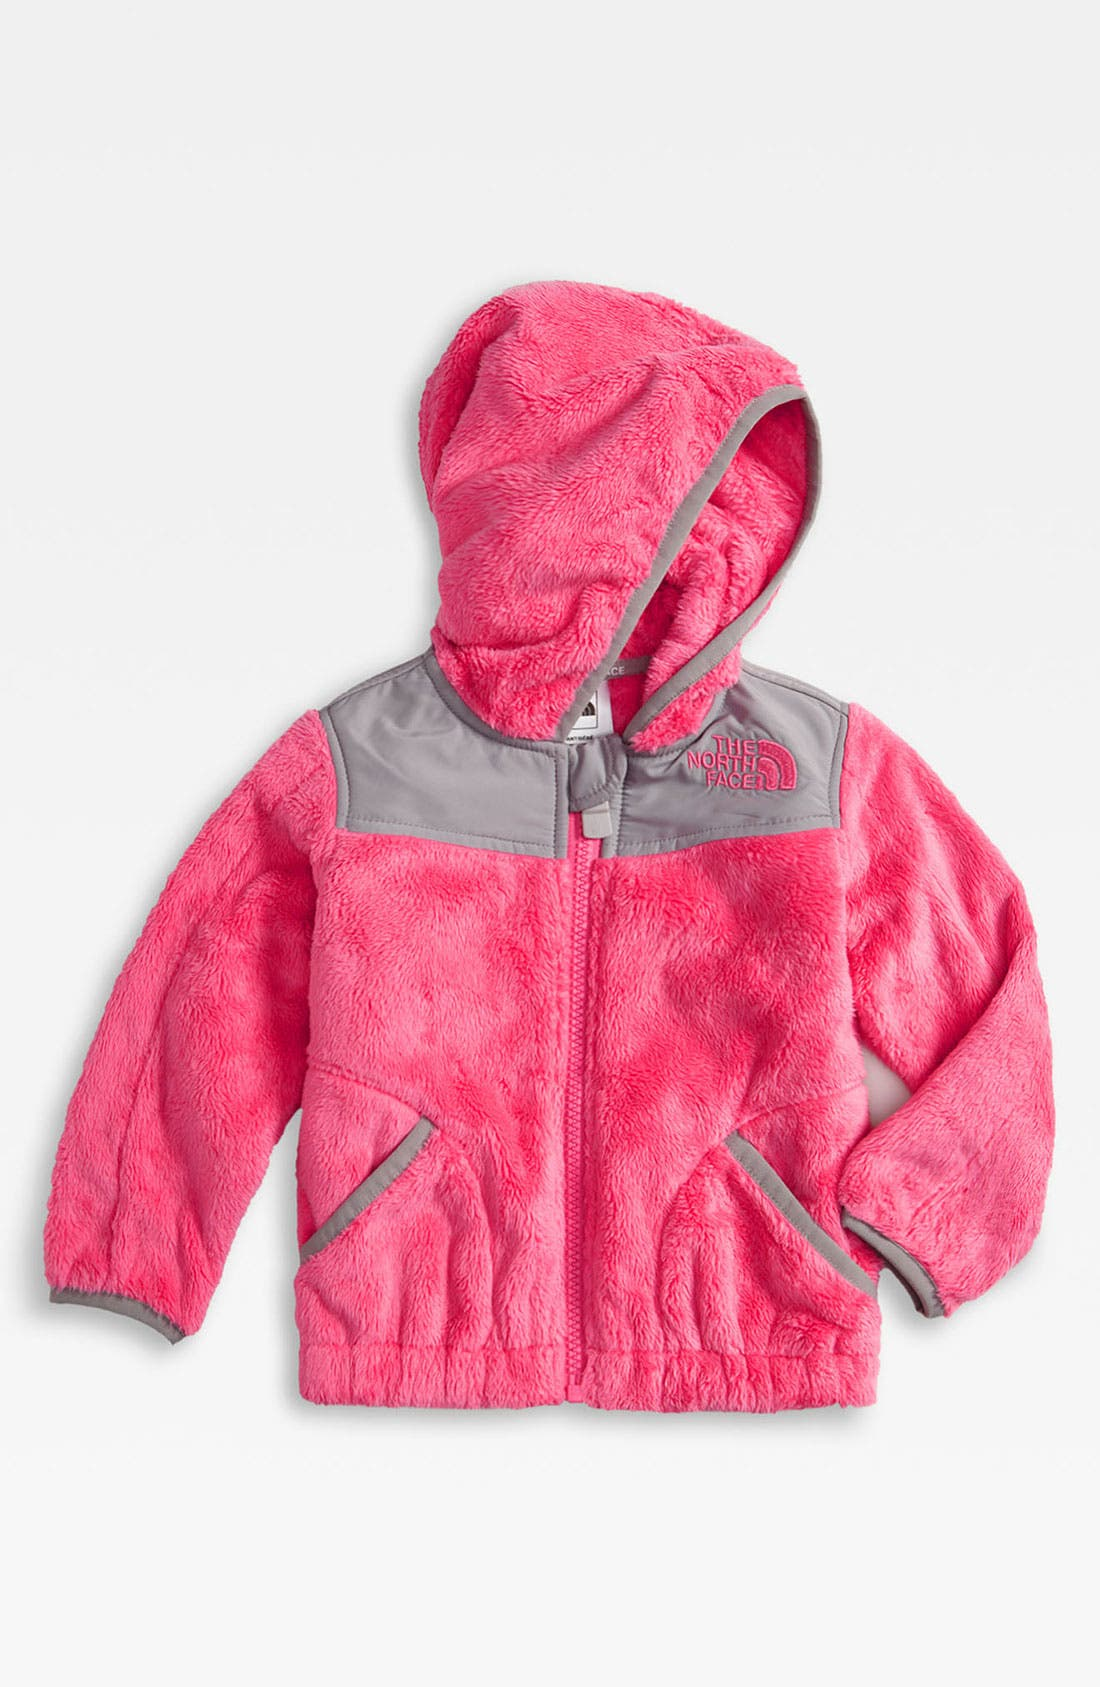 Alternate Image 1 Selected - The North Face 'Oso' Hoodie (Toddler)